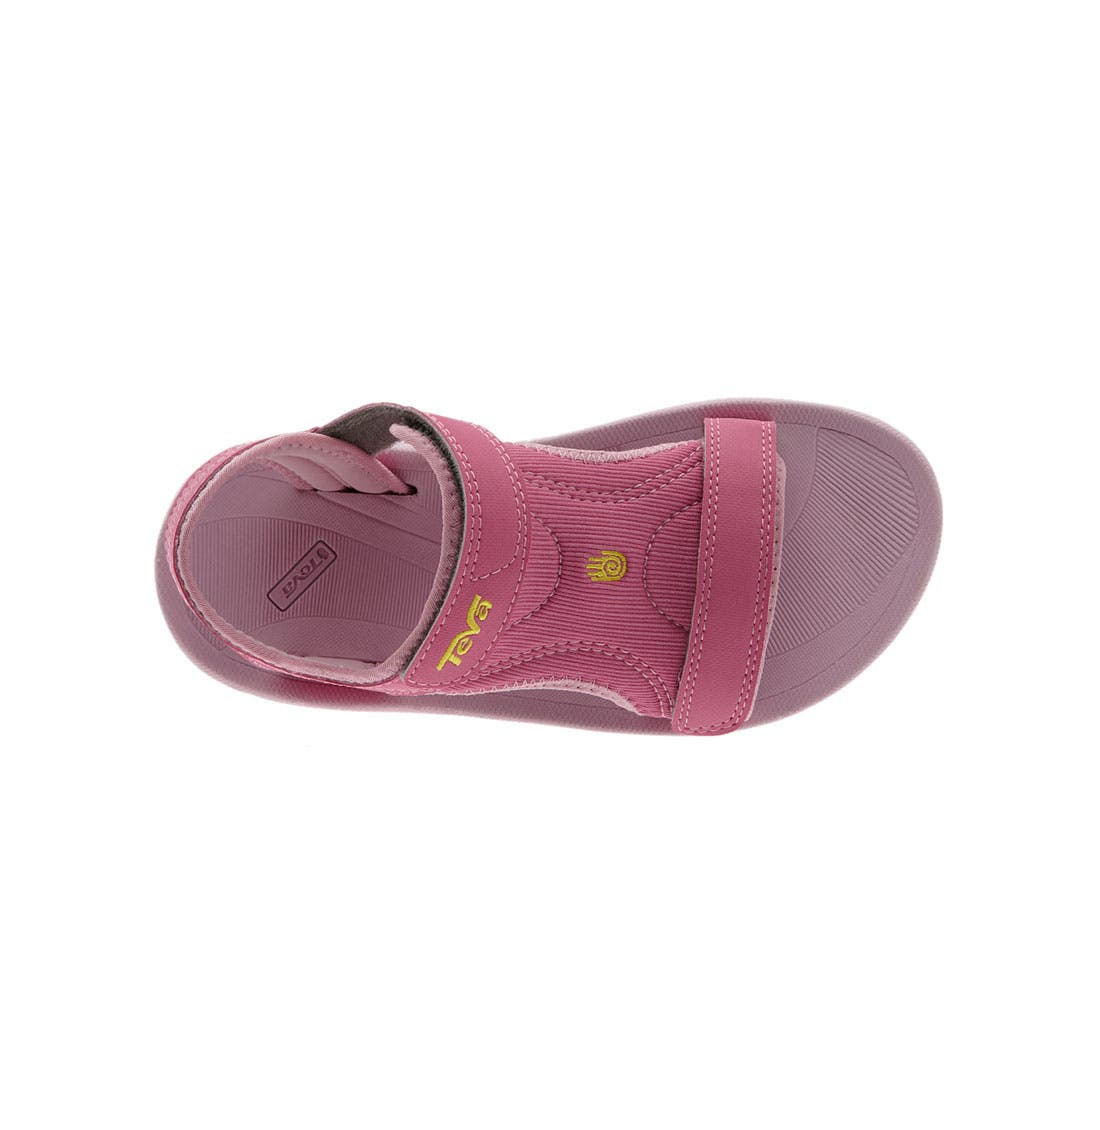 Alternate Image 3  - Teva 'Psyclone' Water Sandal (Toddler, Little Kid & Big Kid)